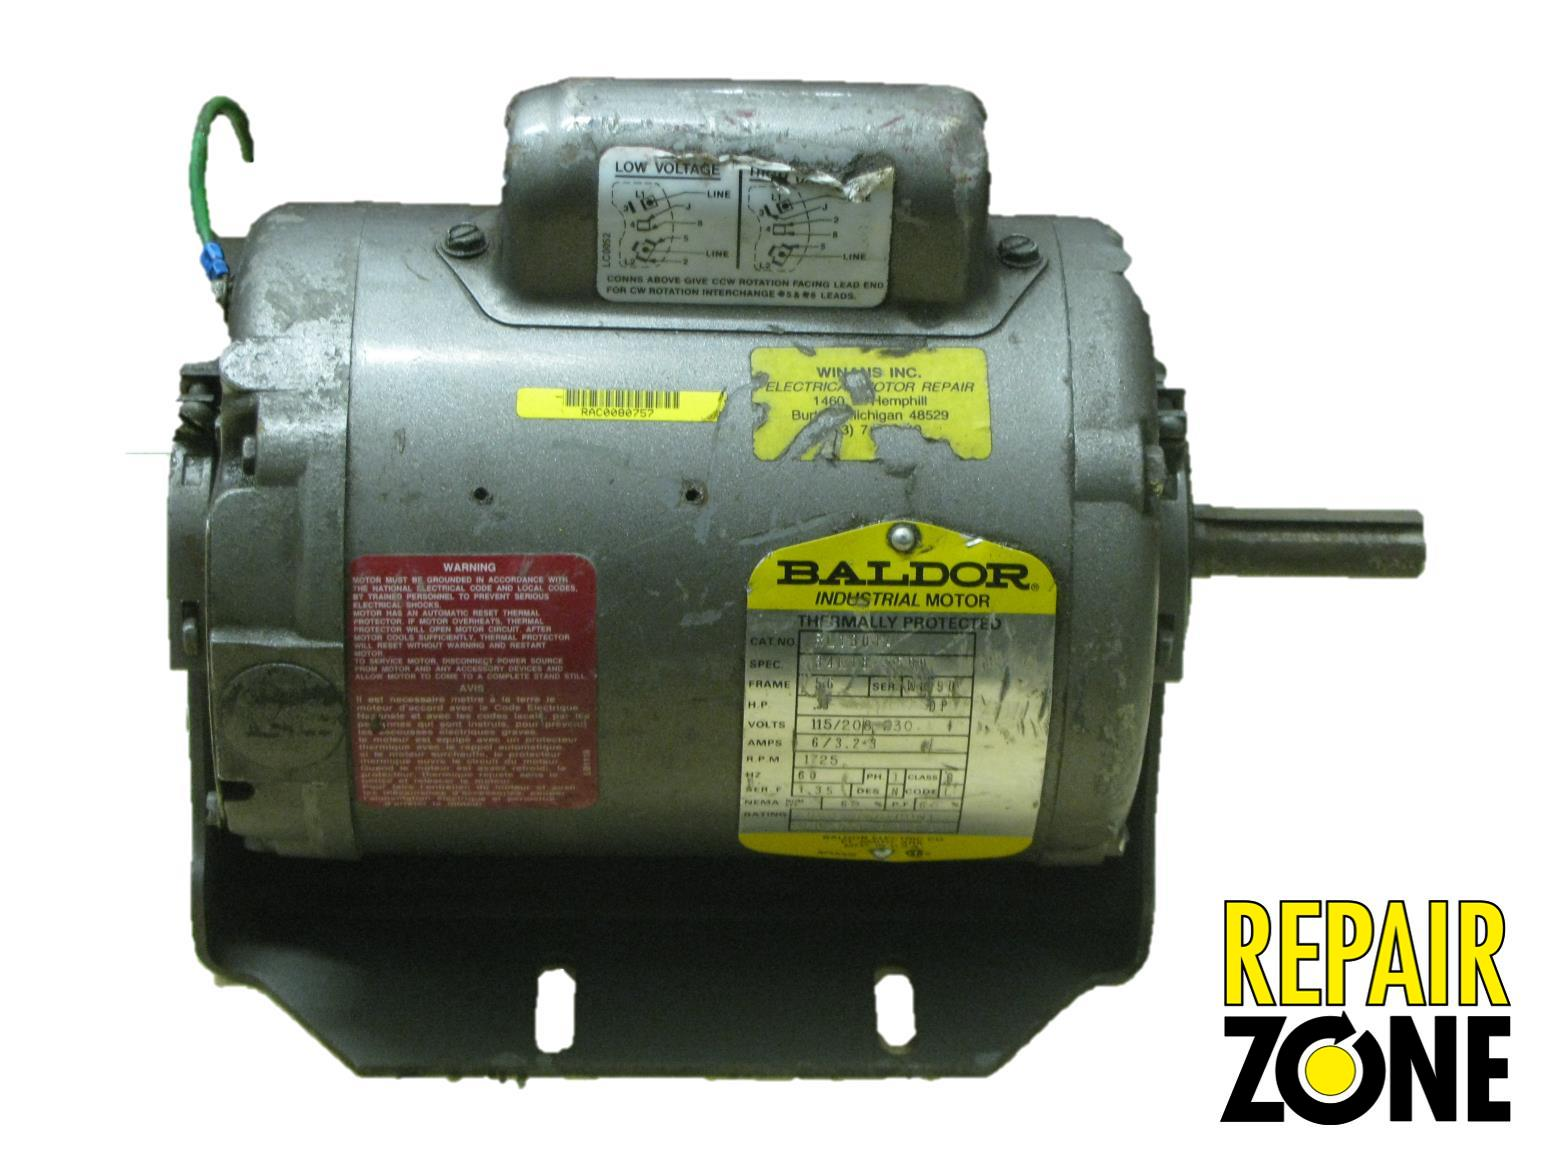 Rl1301a baldor single phase motor liquidation Baldor motor repair